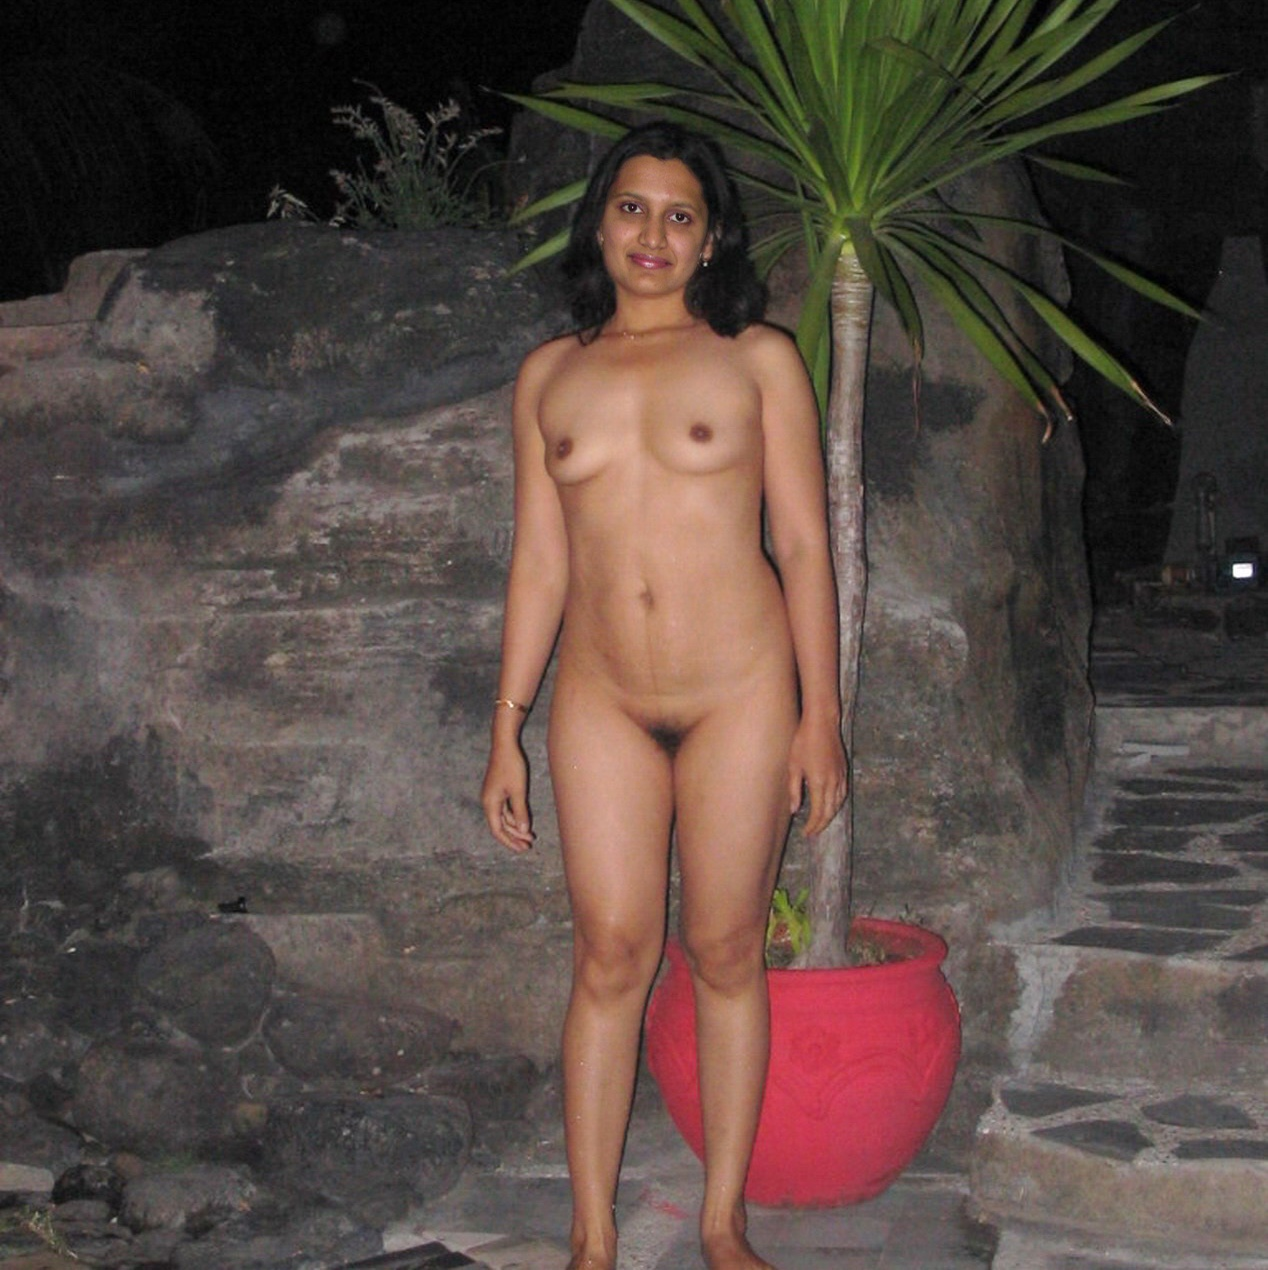 Tamil wife naked congratulate, simply